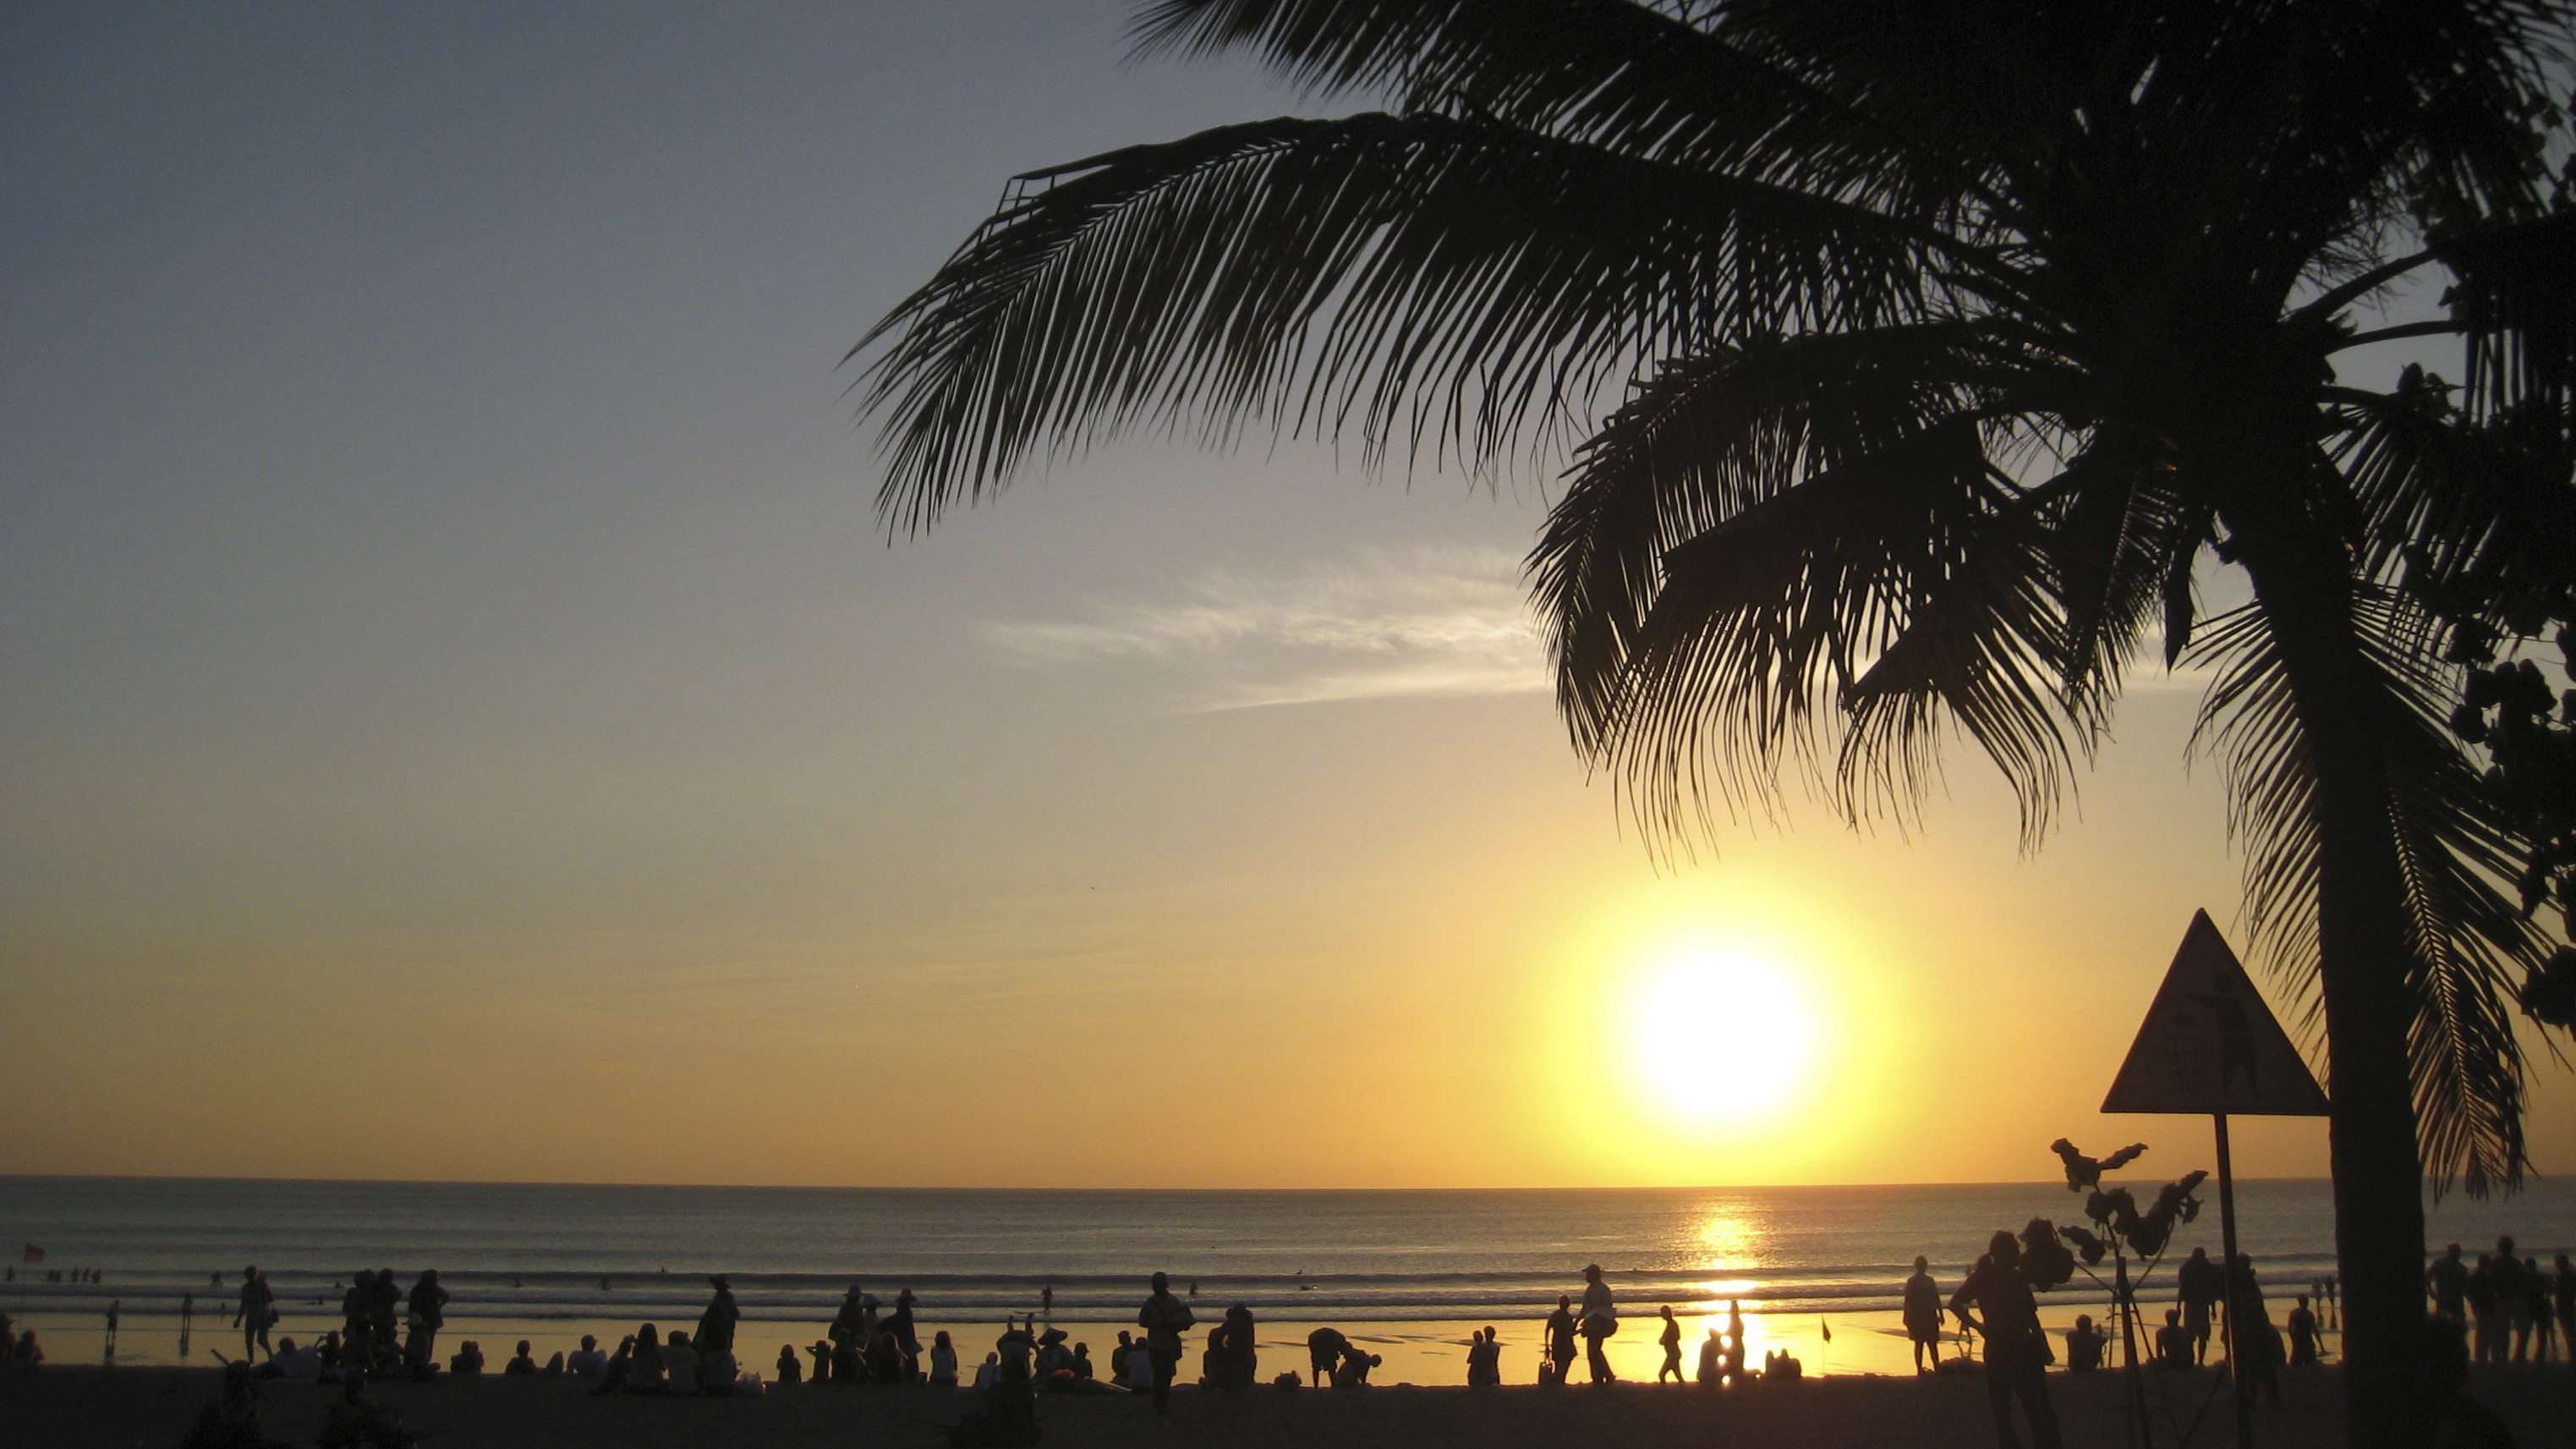 Beachgoers watch the sun set at Kuta beach in Bali, Indonesia